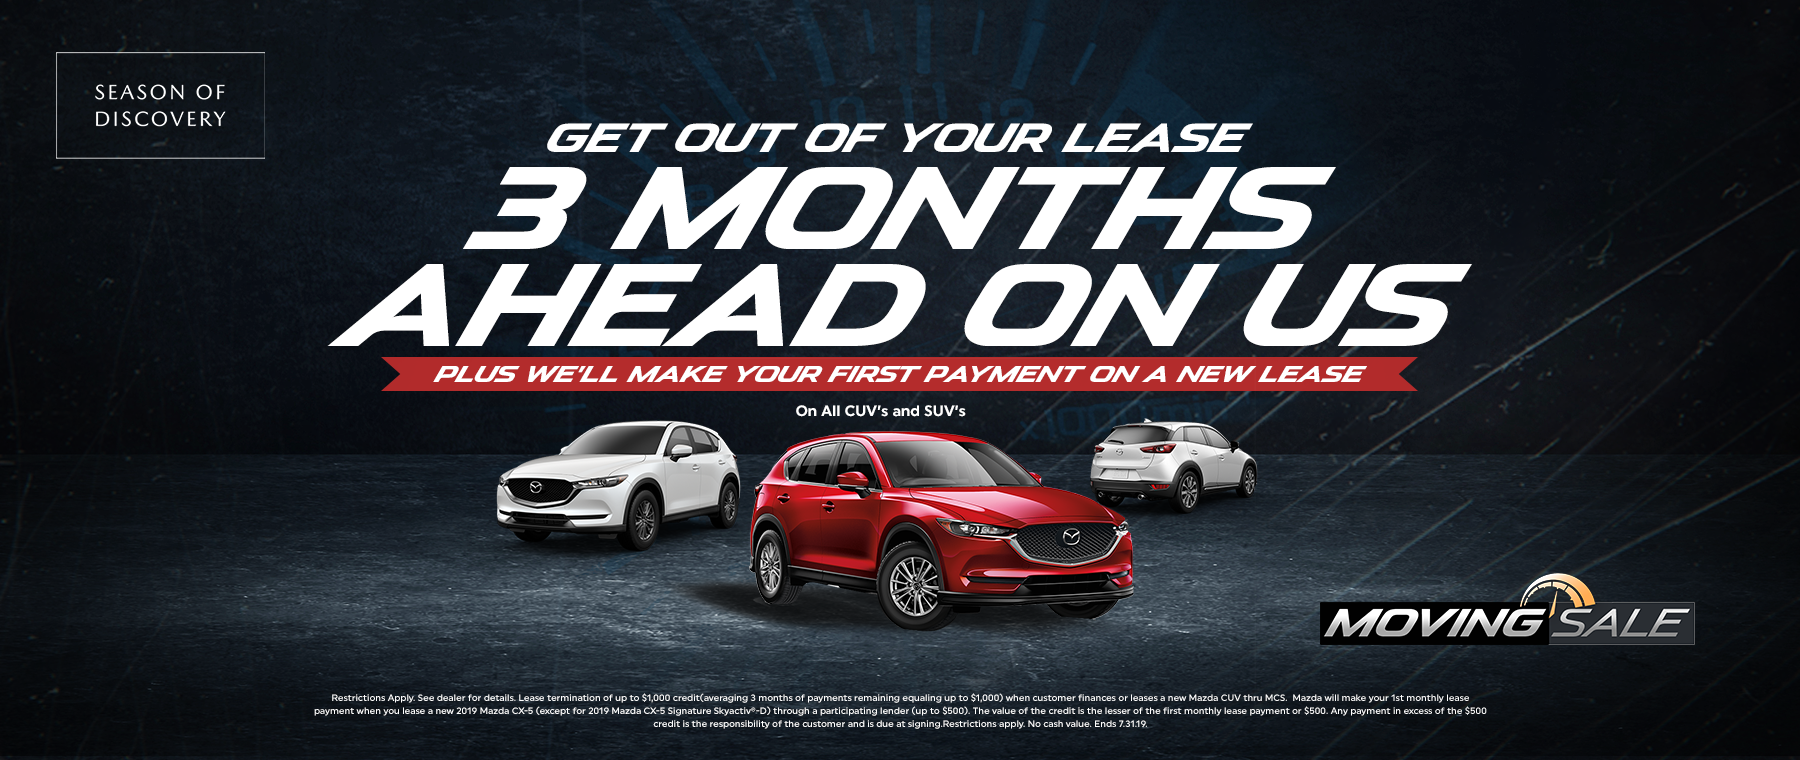 Moving Sale at Jeff Haas Mazda